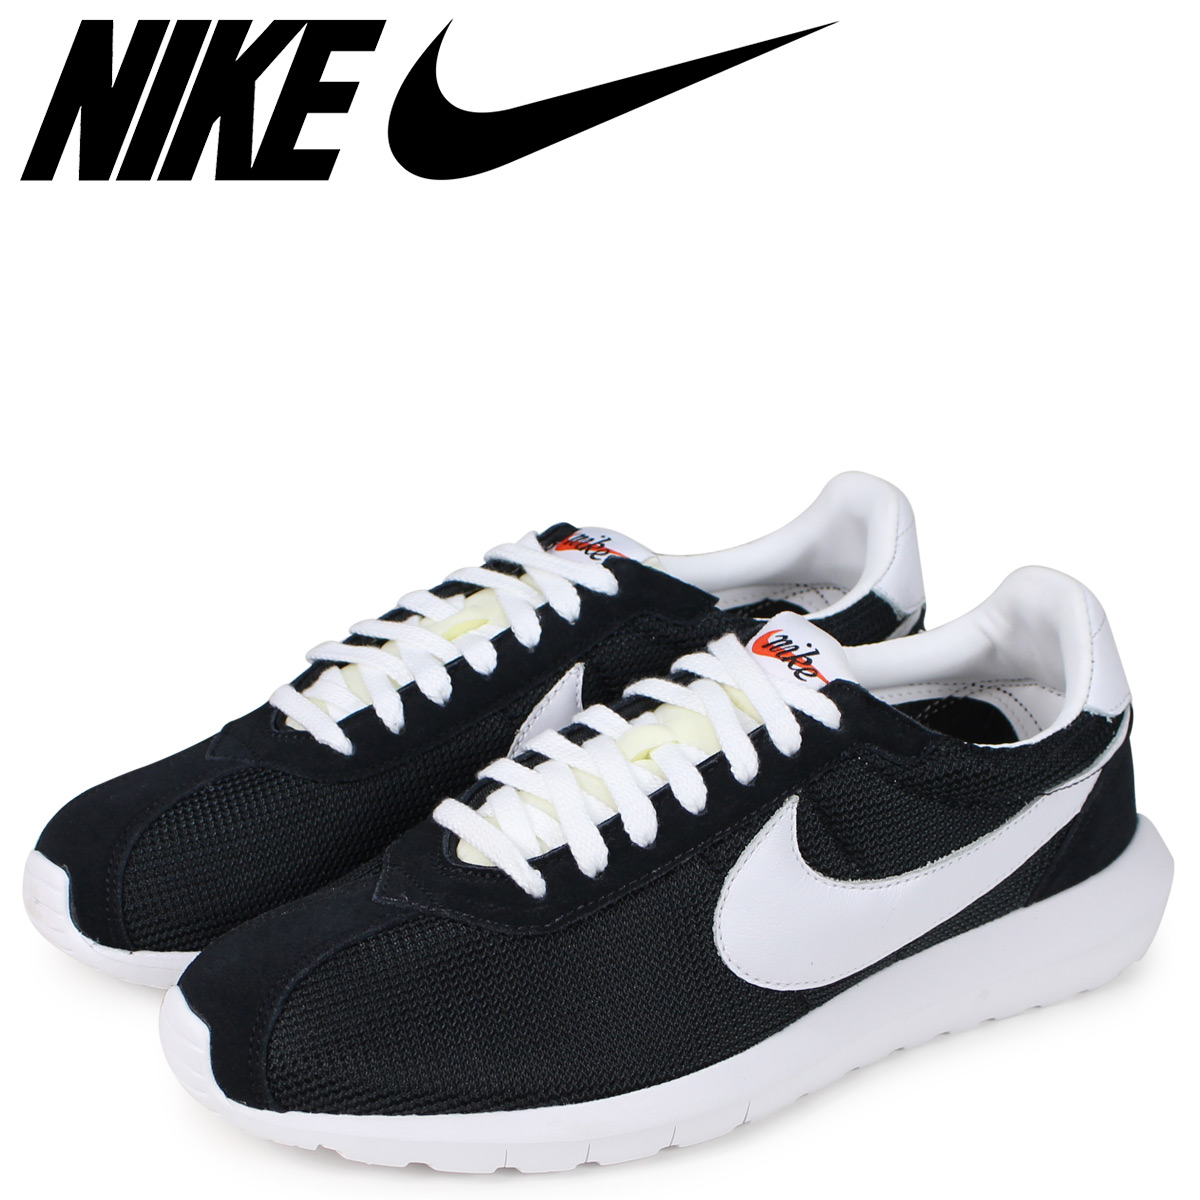 separation shoes 49ad3 fd4bf NIKE Nike low cis knee Carmen ROSHE LD-1000 QS black 802,022-001  load  planned Shinnyu load in reservation product 11 19 containing